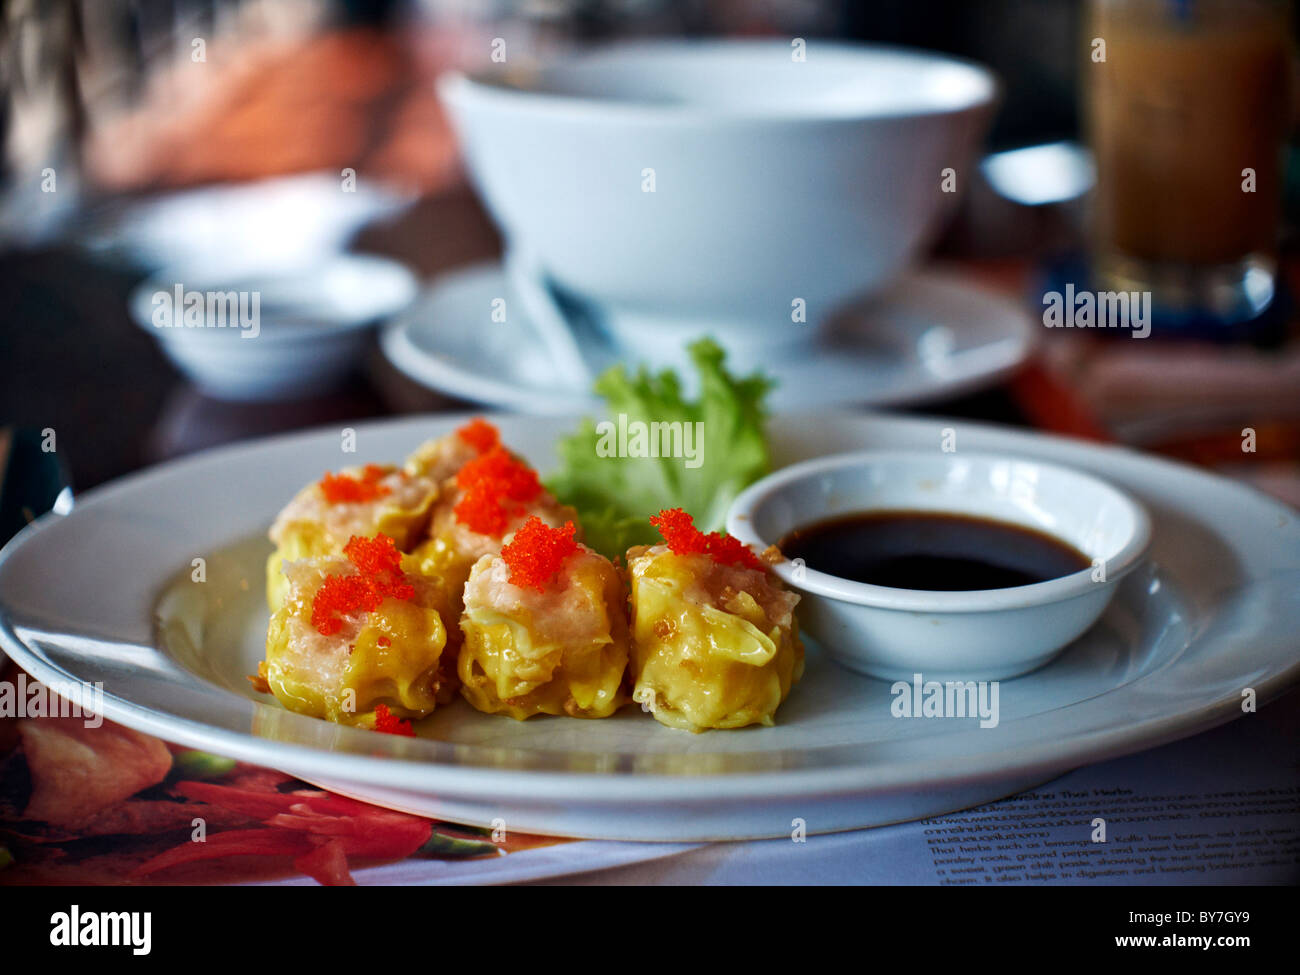 Dim Sum appetizer and complementary sauce dip. Thailand S. E. Asia - Stock Image